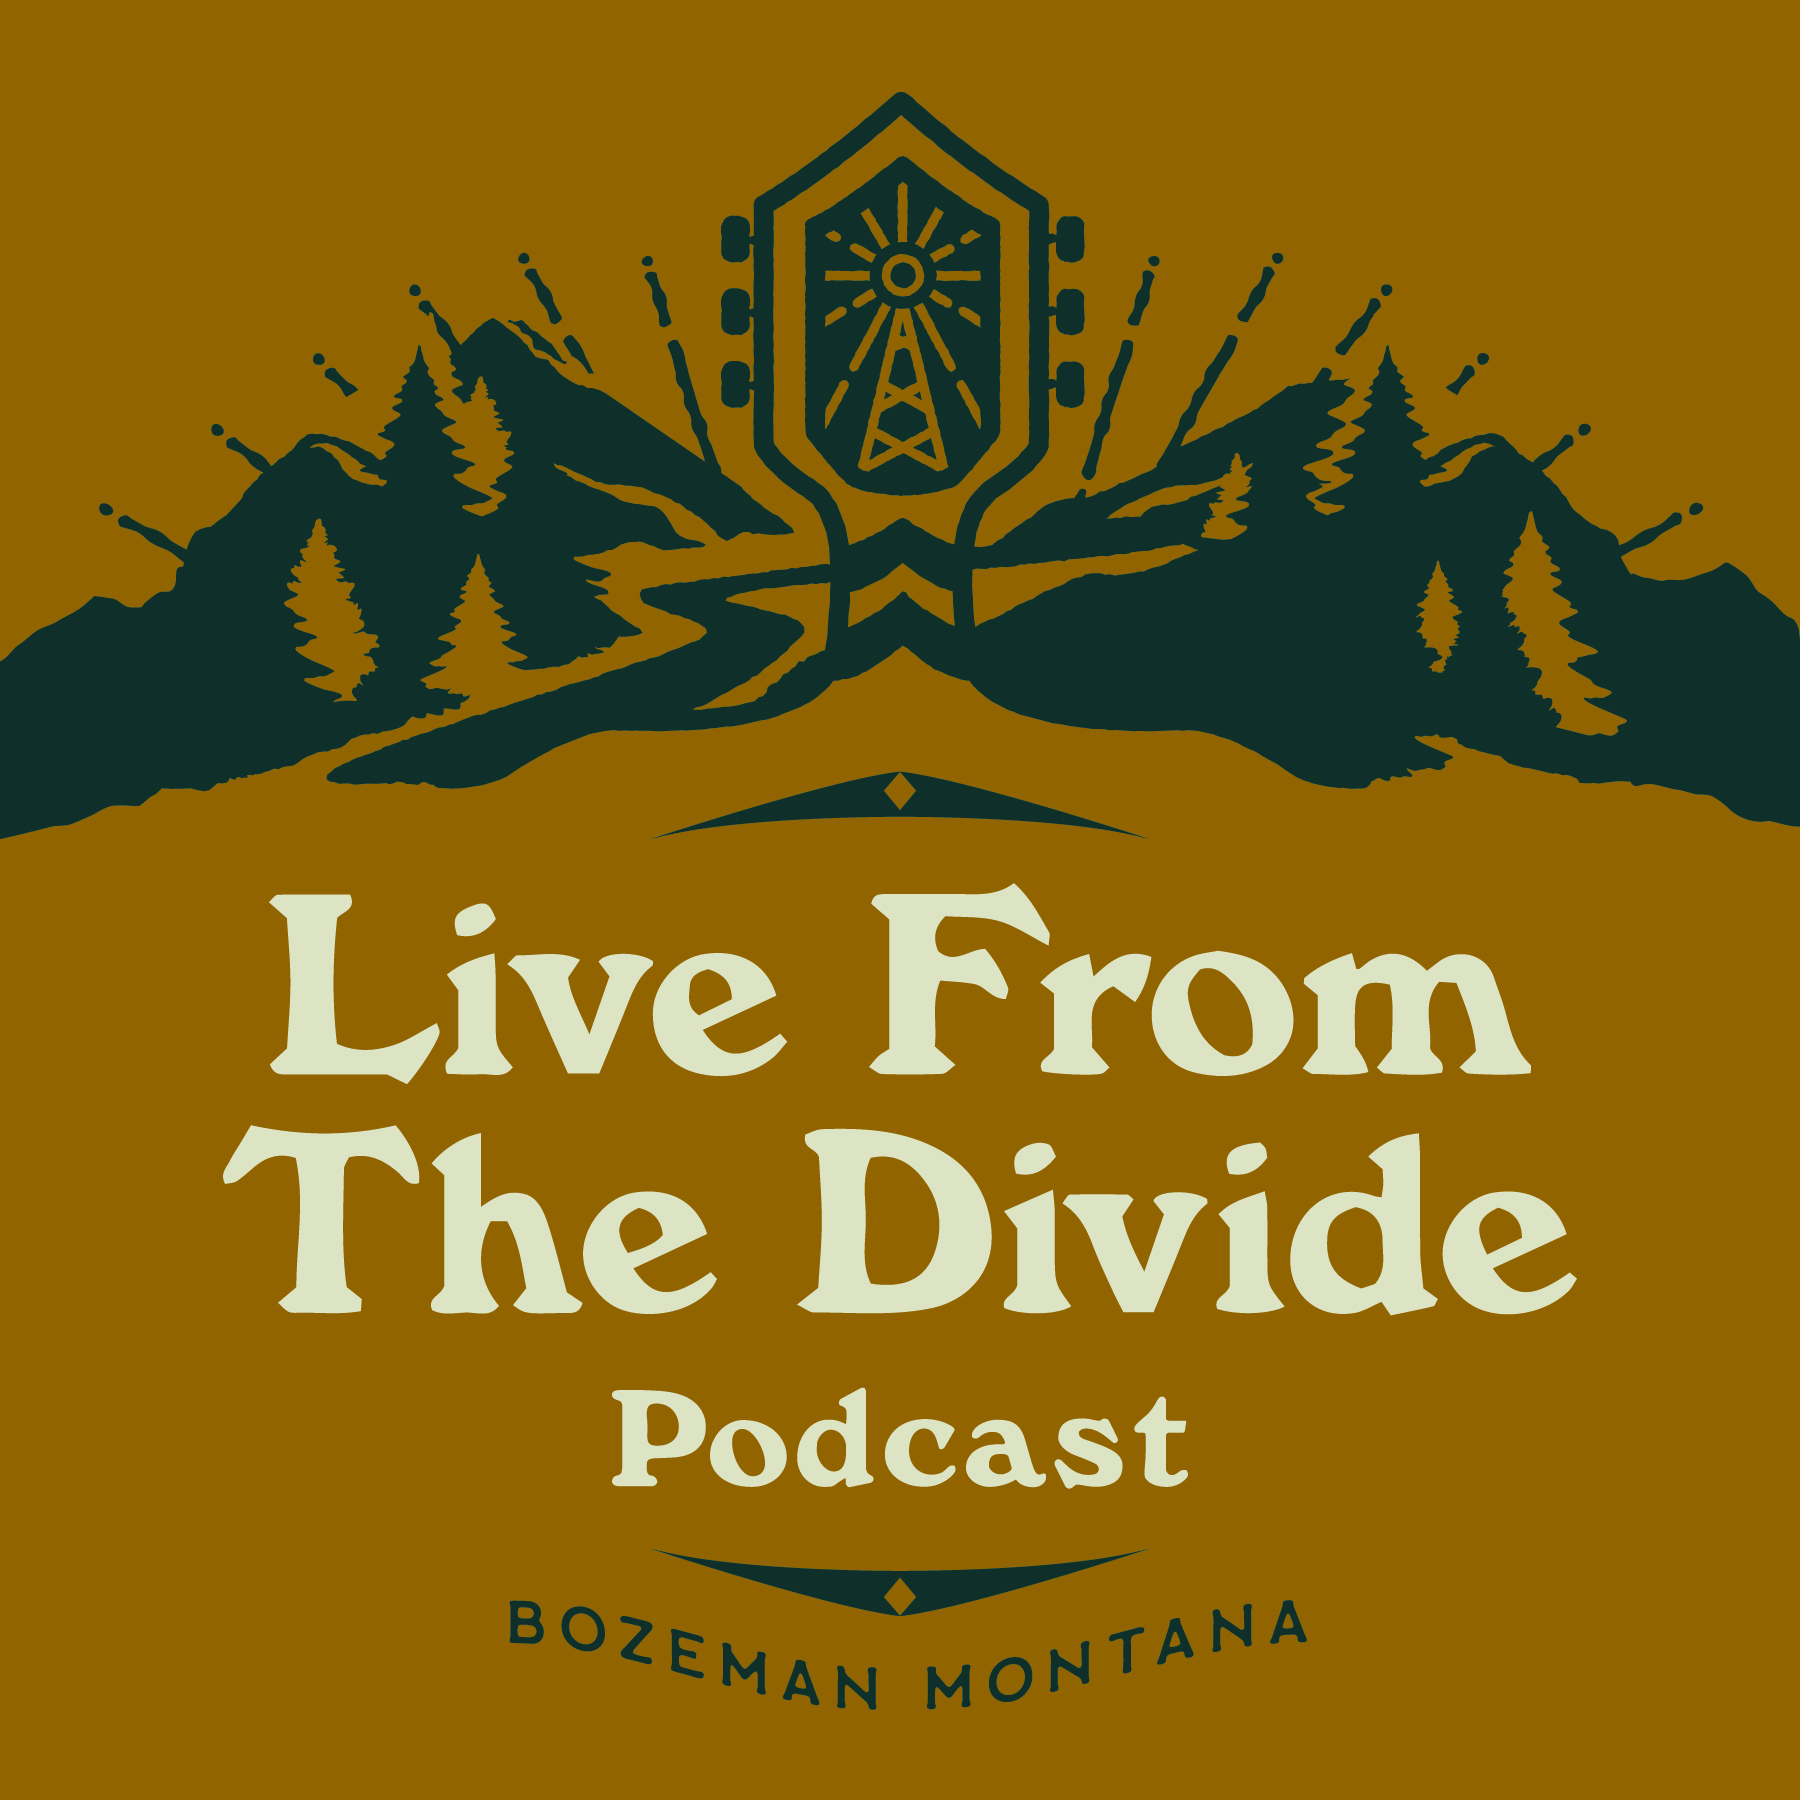 Did you know? Live From The Divide has a Podcast! - Listen to insightful interviews about songwriting and gain access to exclusive live performances captured at The Divide.